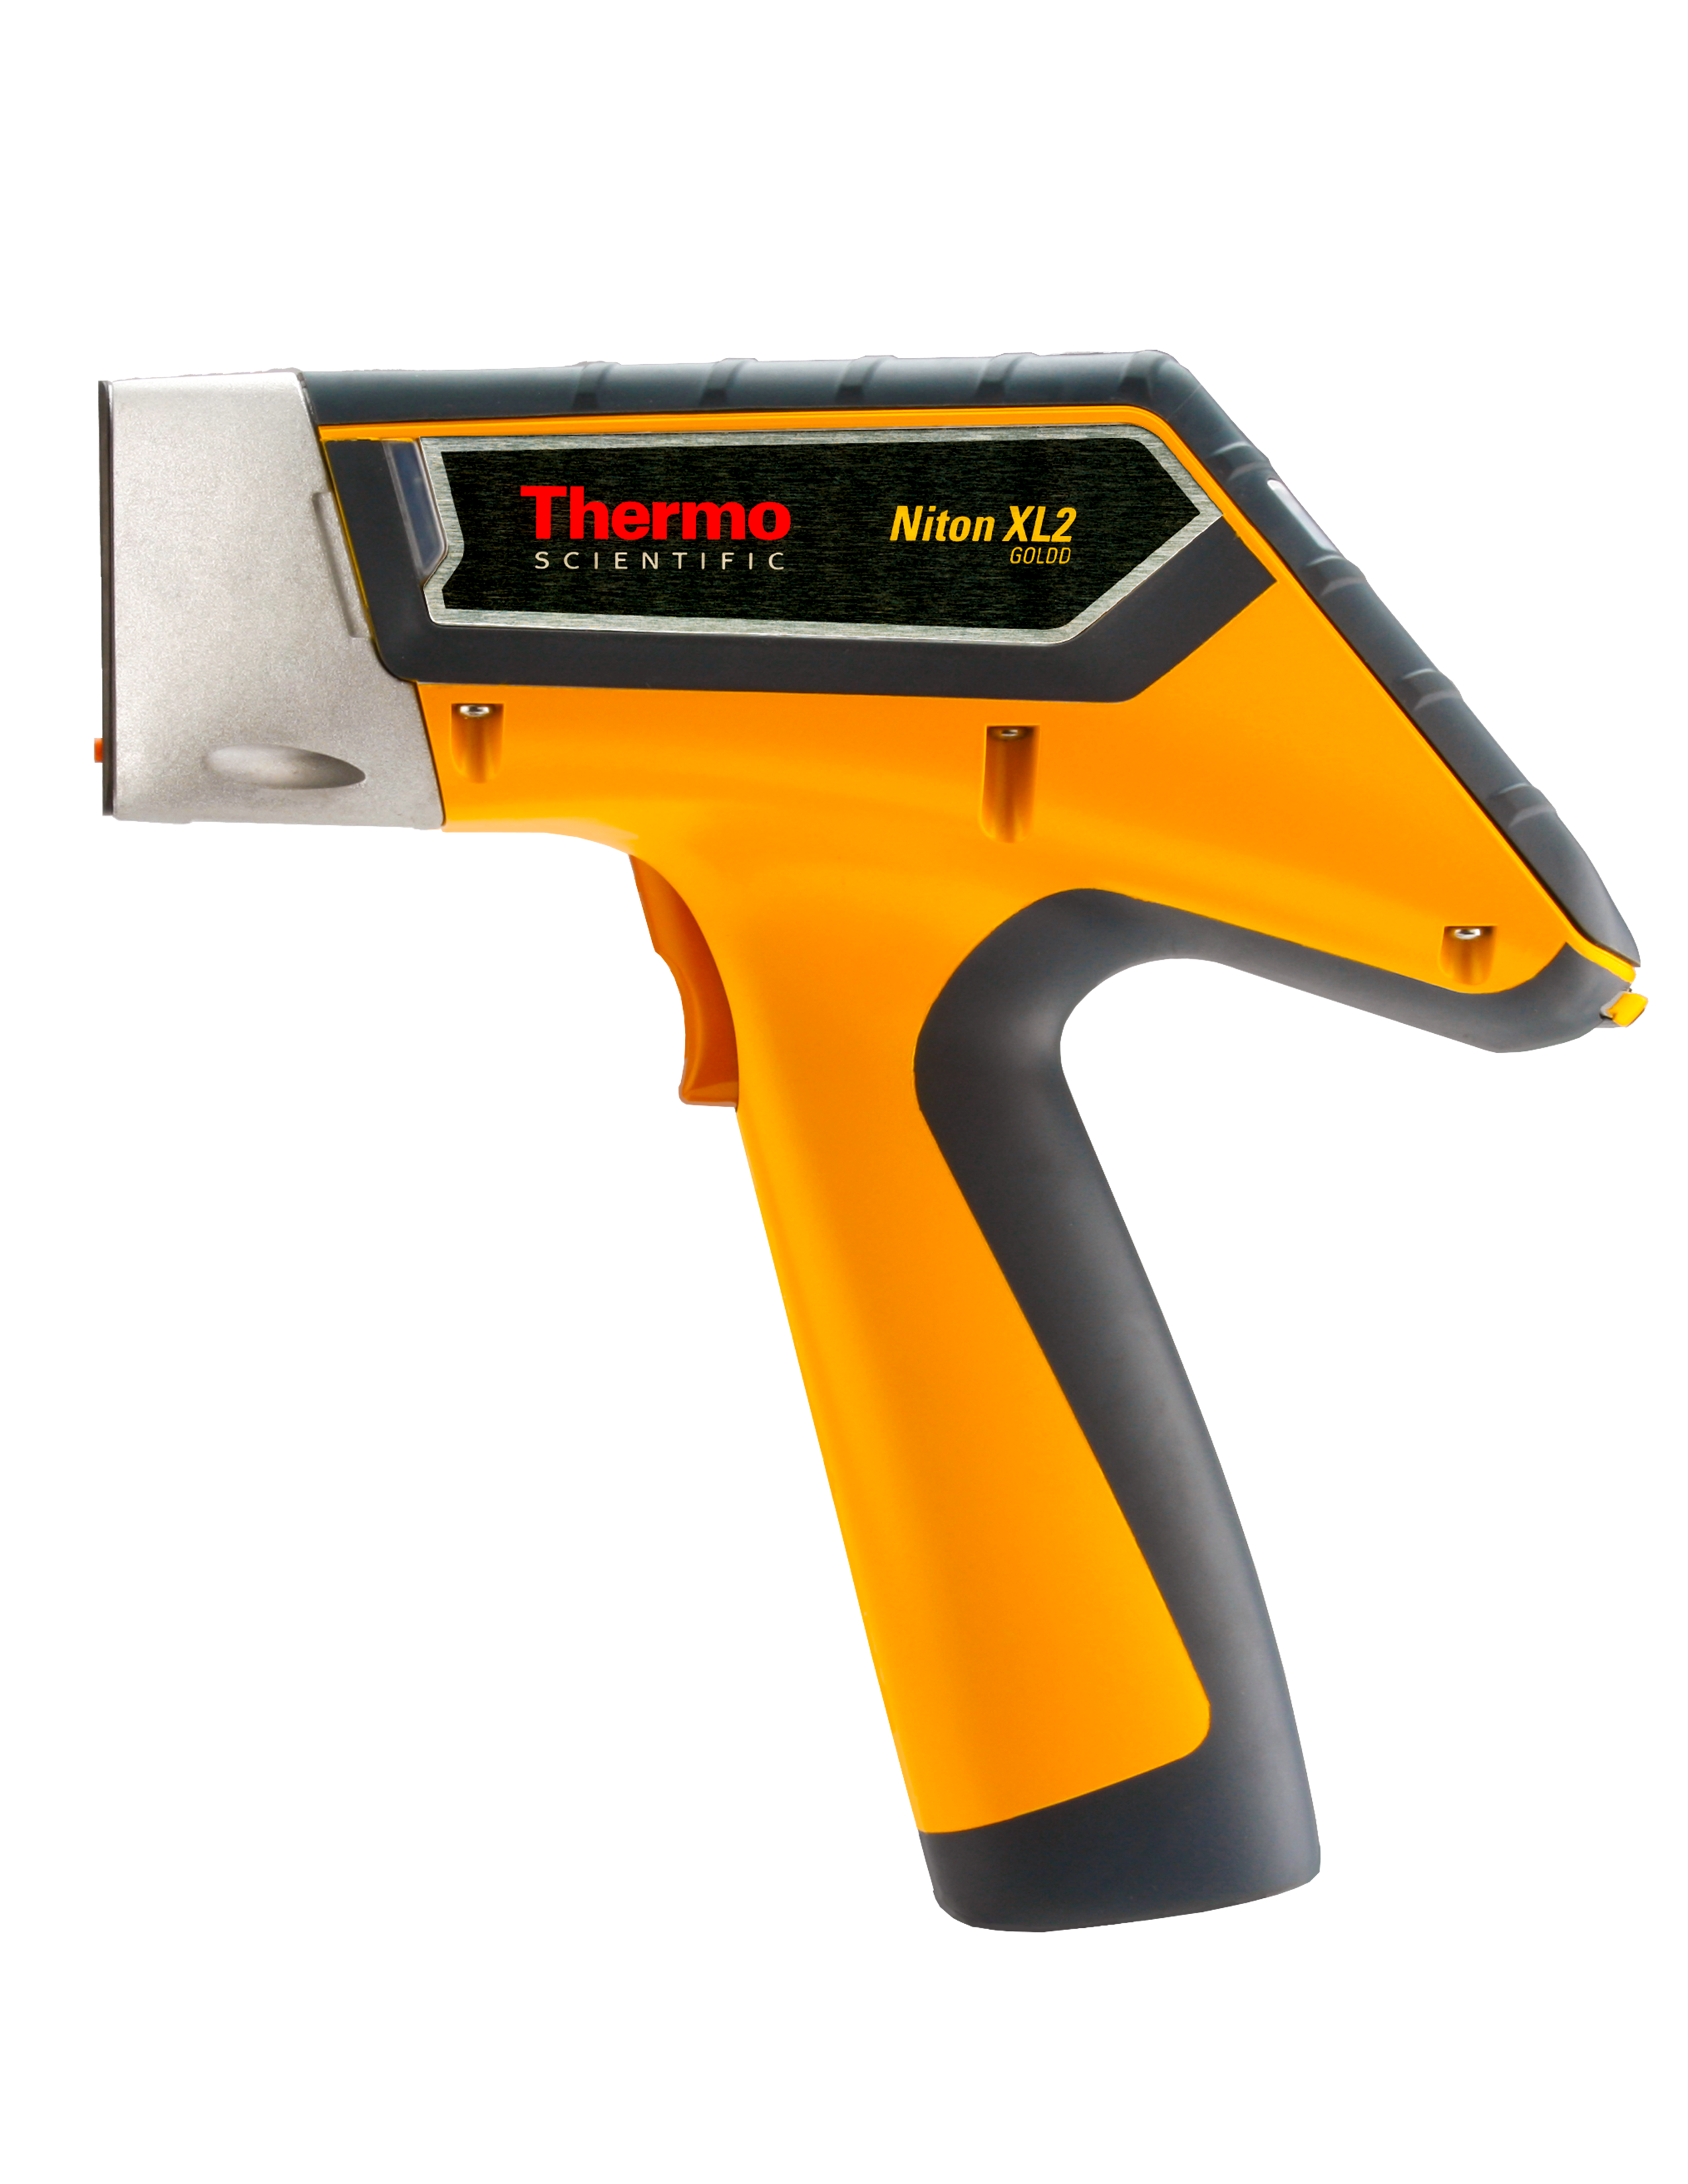 THERMO SCIENTIFIC NITON XL2 GOLDD XRF ANALYSER/PMI GUN